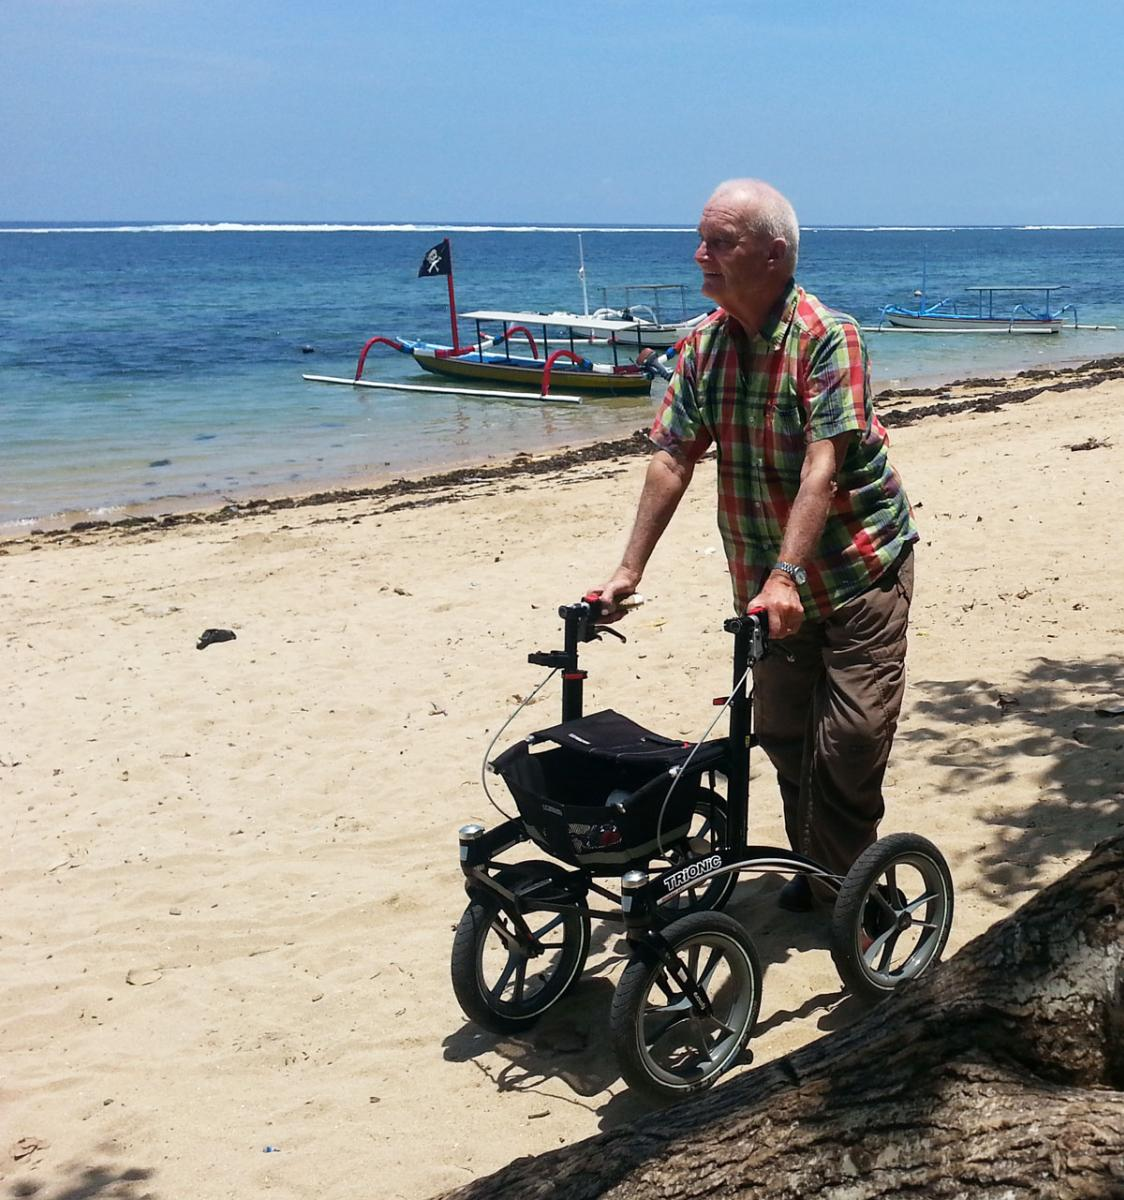 Wim Wollendorf enjoying a beach walk on Bali in Indonesia